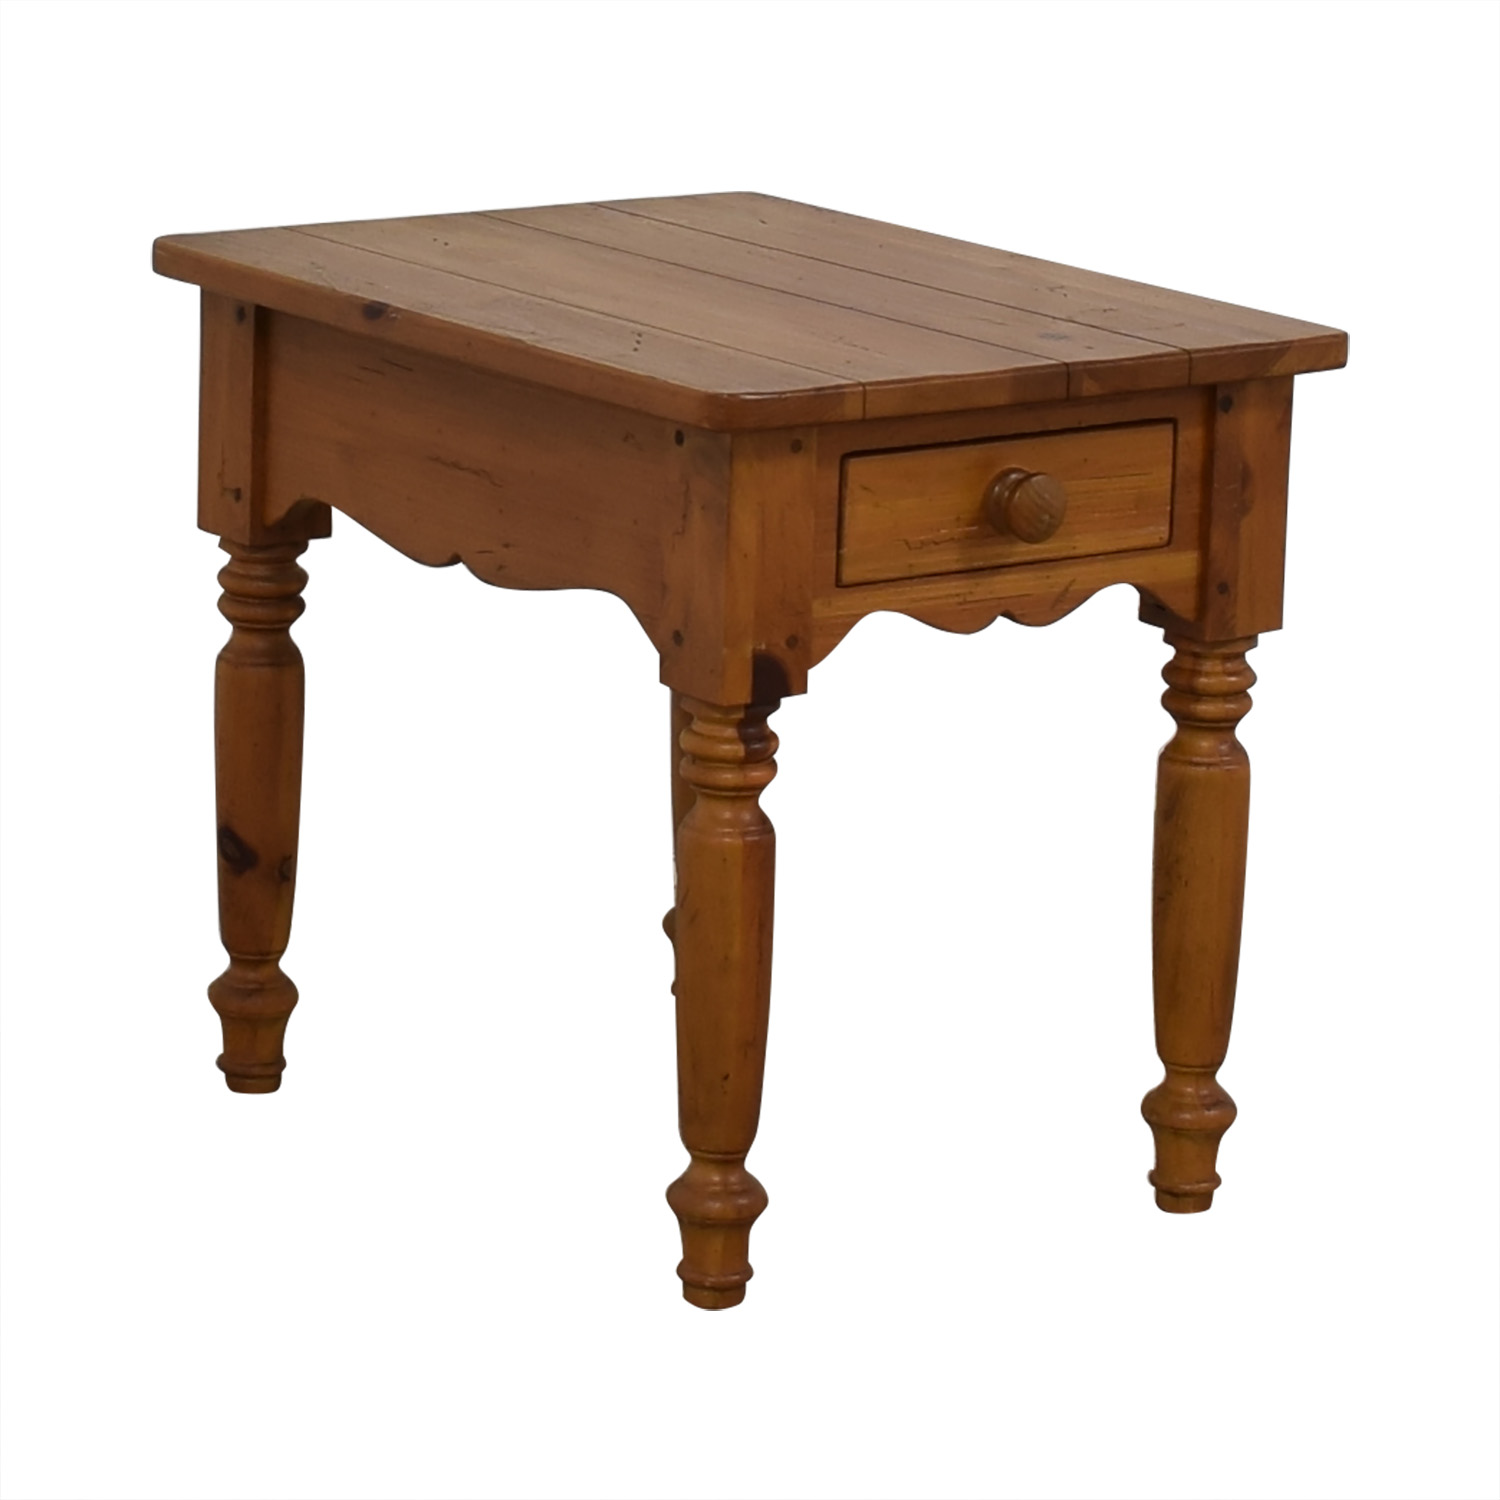 Ethan Allen Ethan Allen Dovetailed Single Drawer End Table coupon